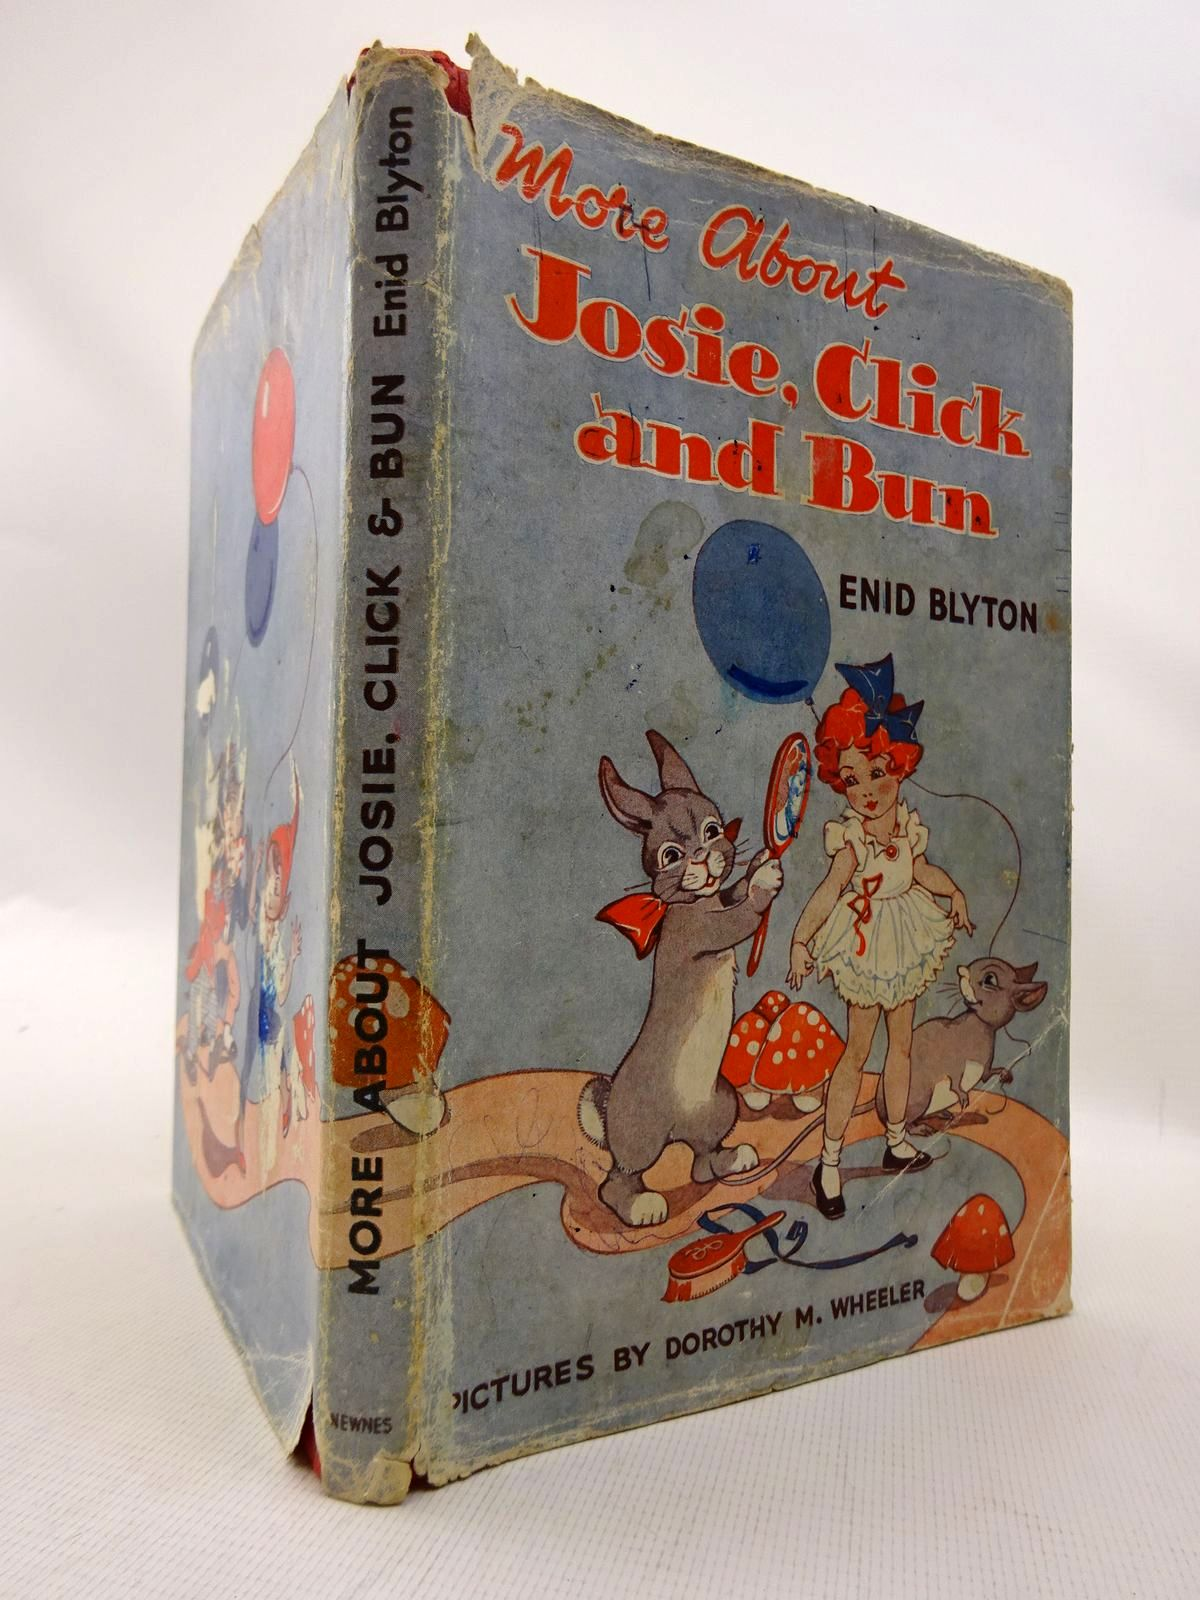 Photo of MORE ABOUT JOSIE, CLICK AND BUN written by Blyton, Enid illustrated by Wheeler, Dorothy M. published by George Newnes Ltd. (STOCK CODE: 1815829)  for sale by Stella & Rose's Books